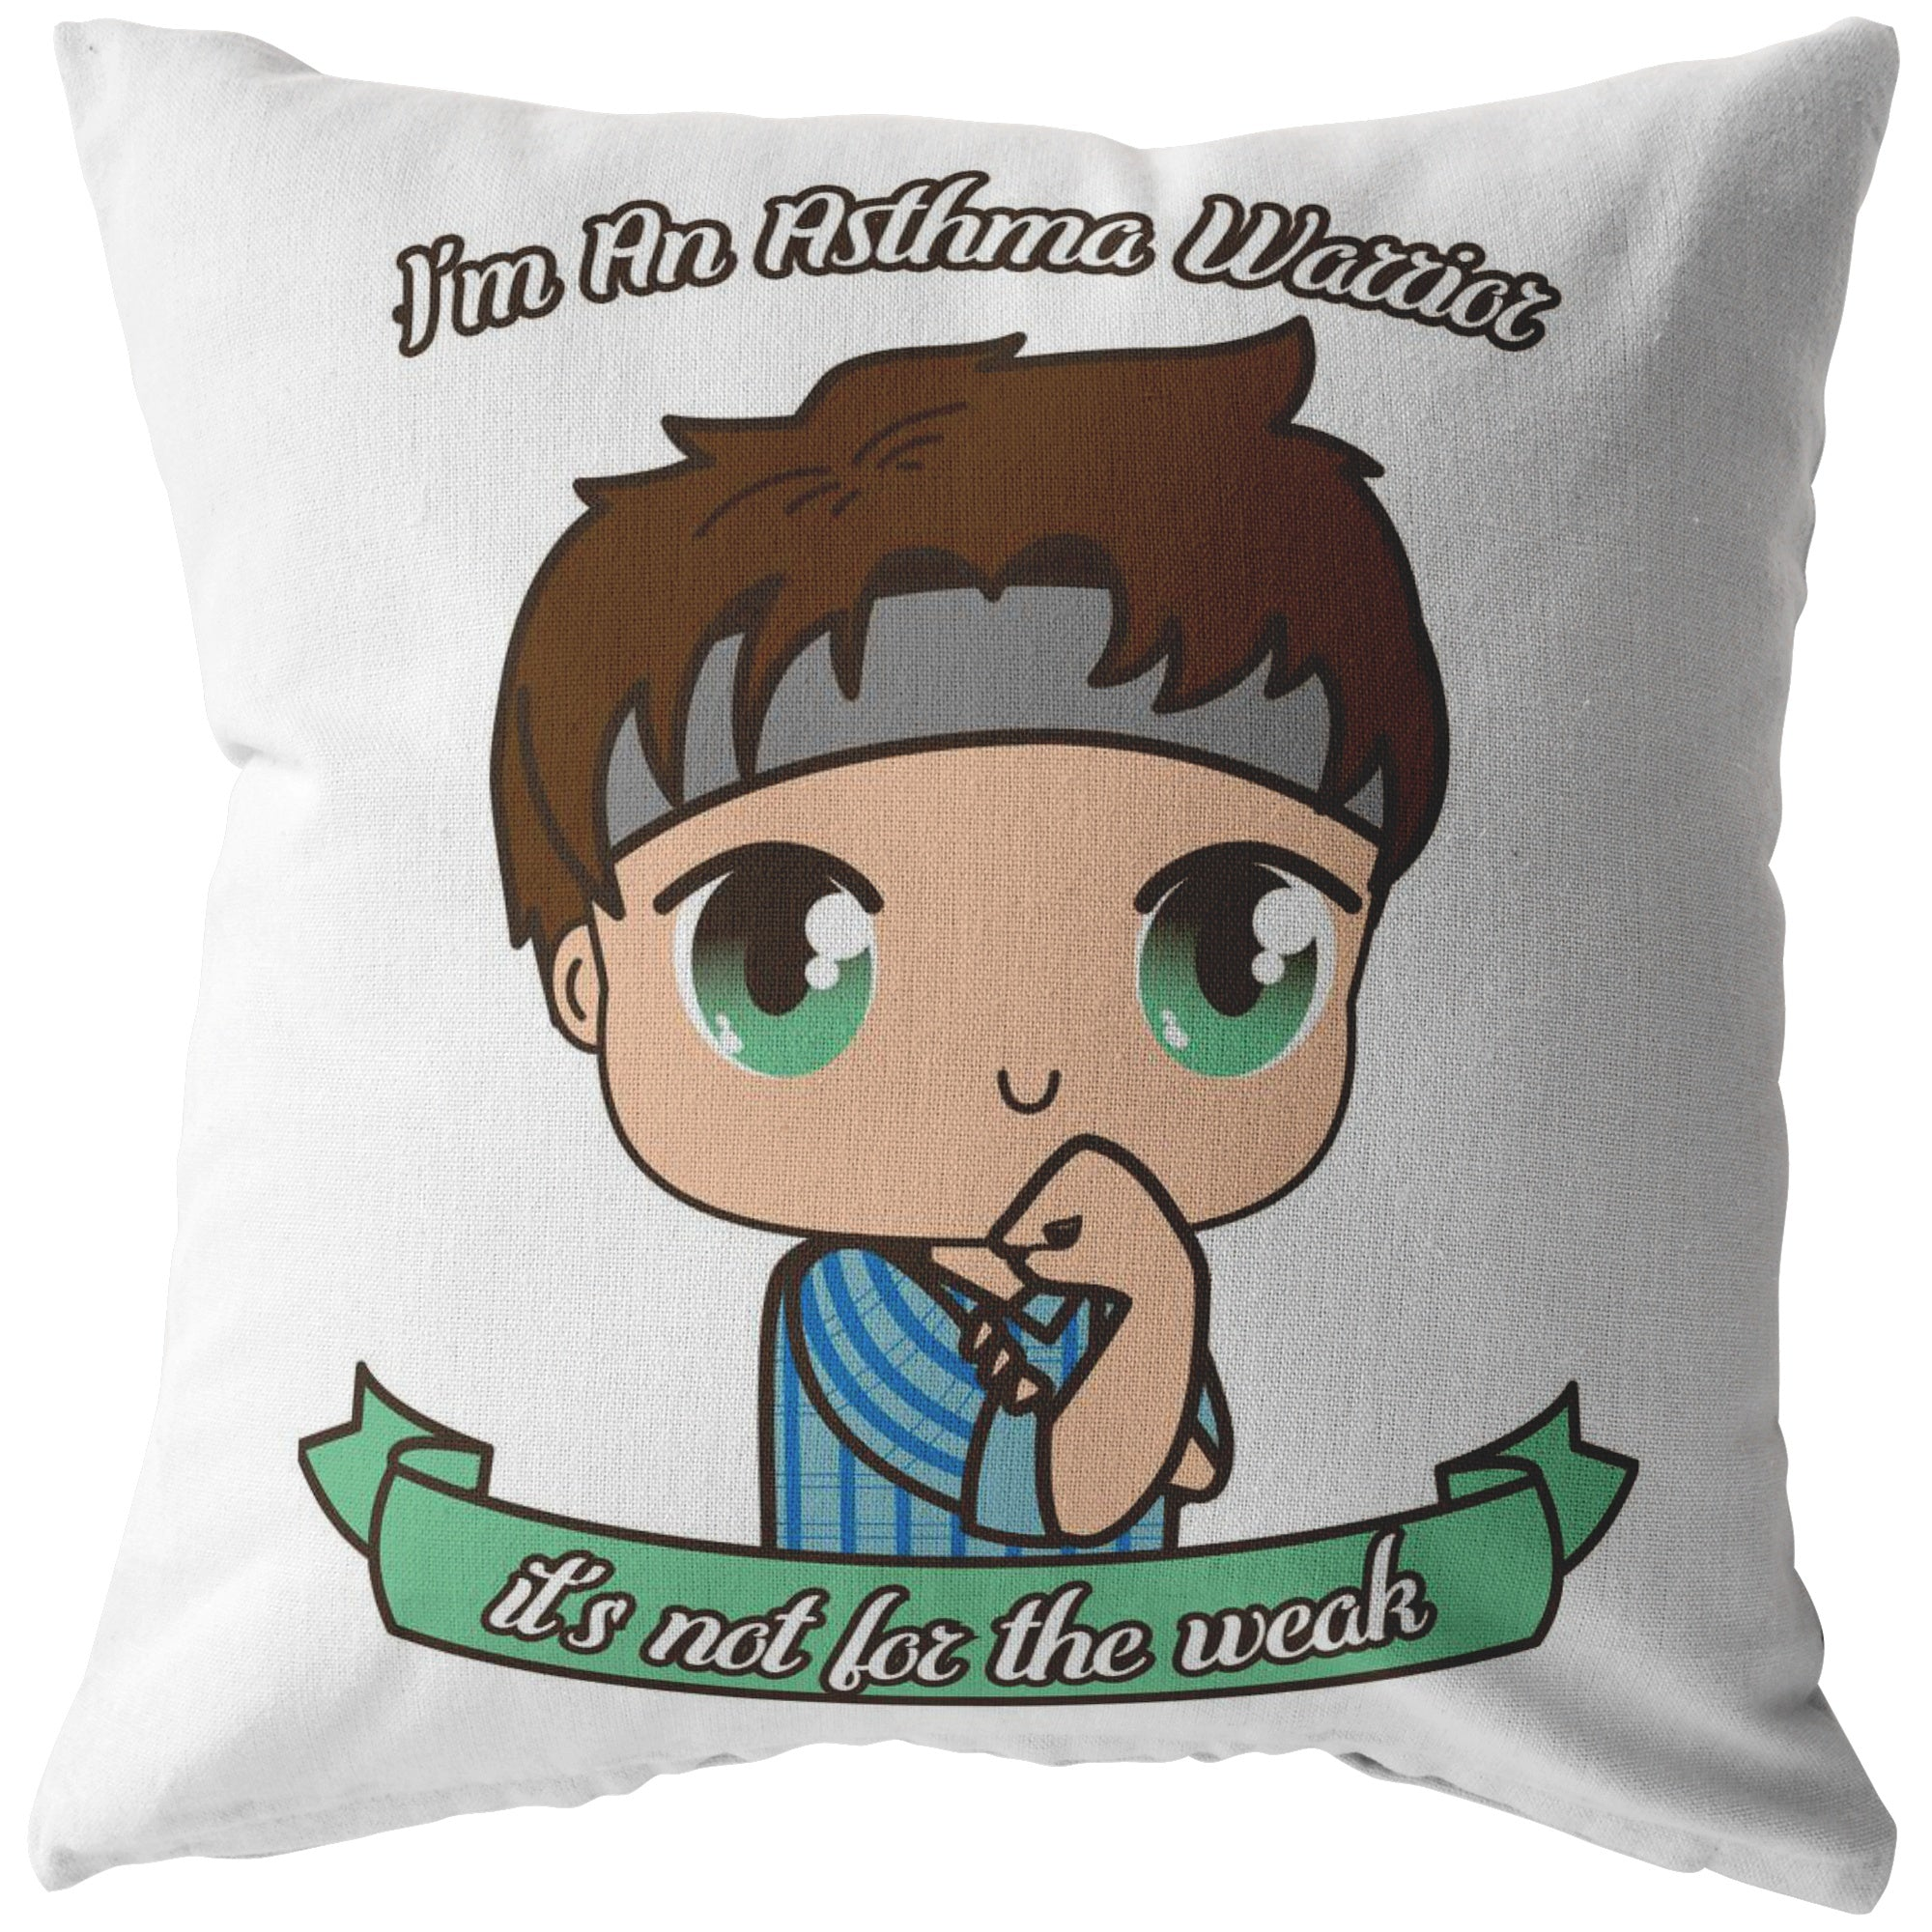 Cute Asthma Warrior Boy Pillow